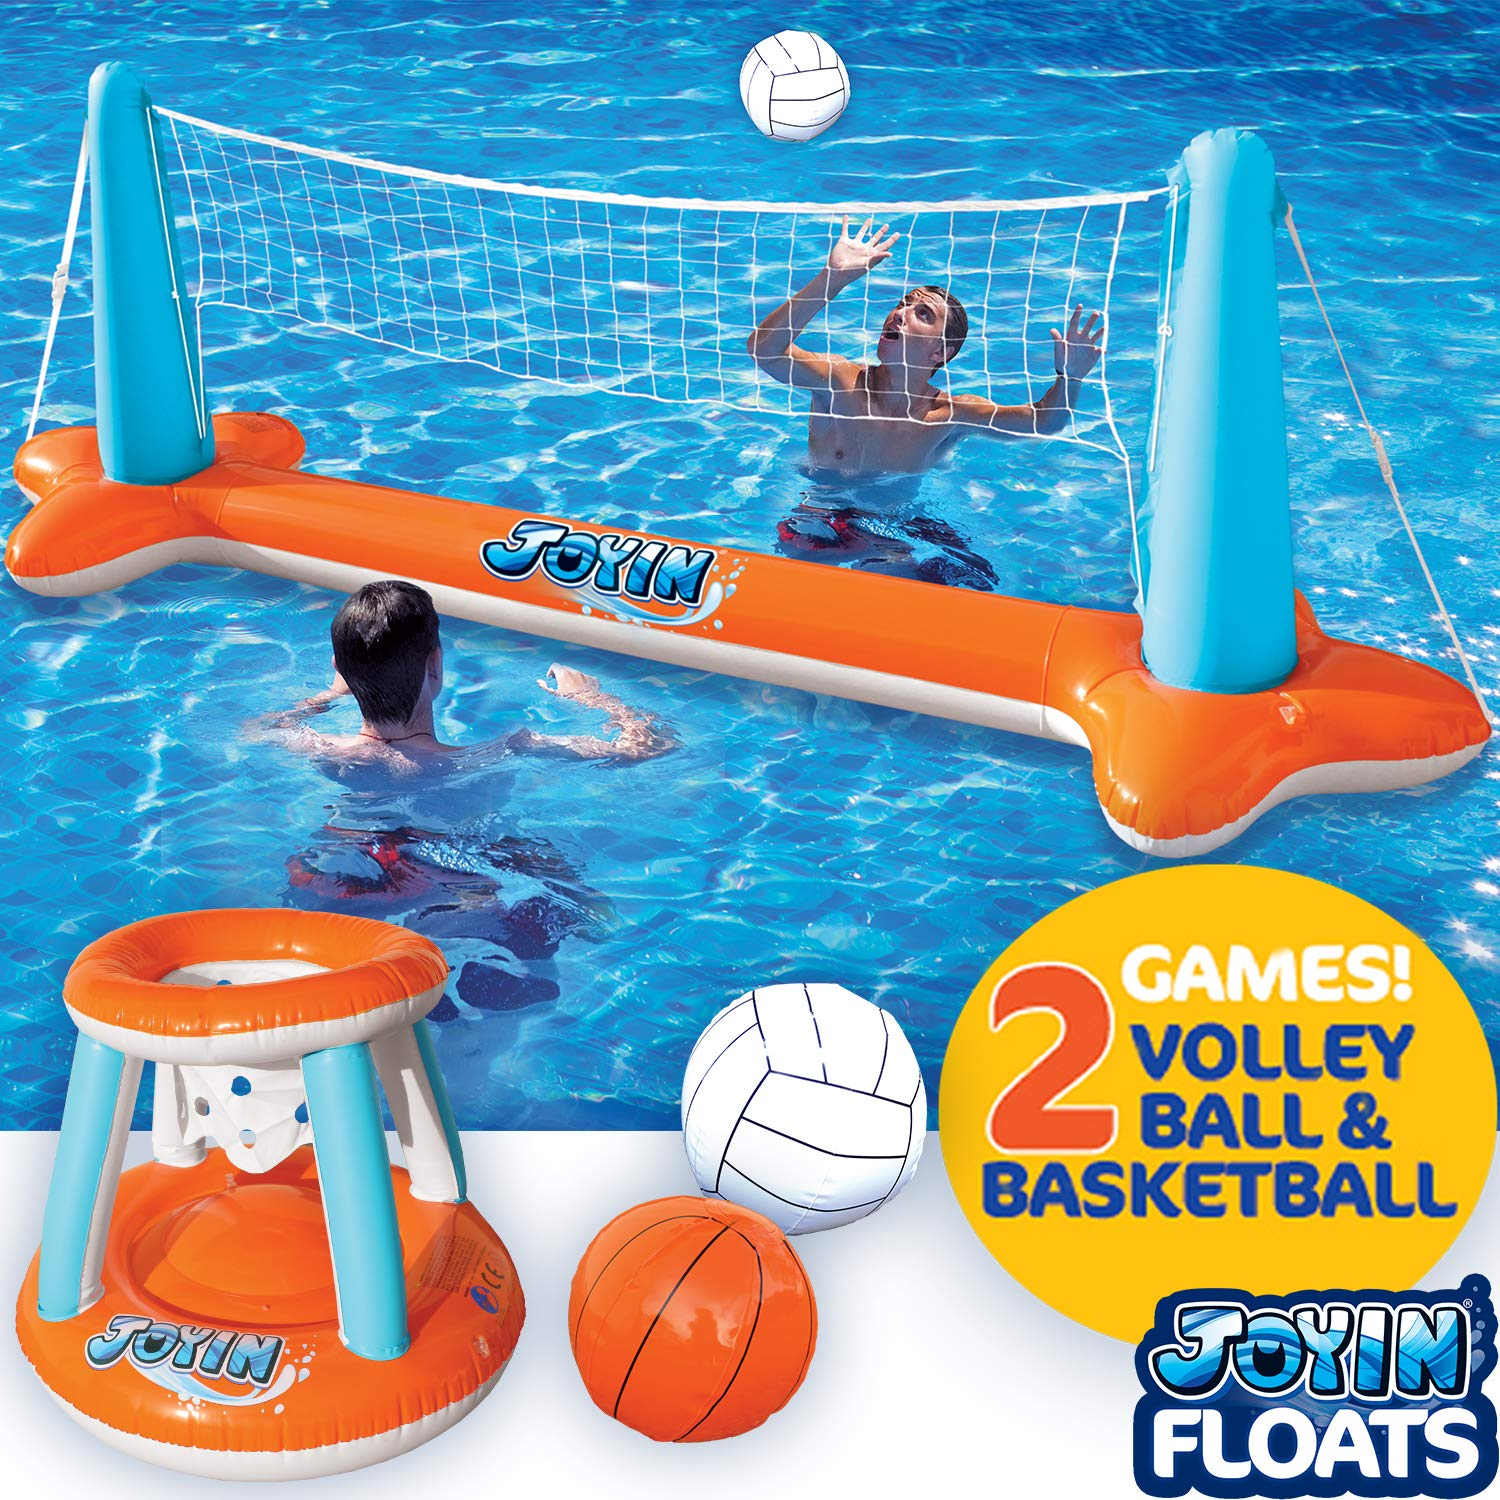 Inflatable Pool Float Set Volleyball Net Basketball Hoops Balls Included For Kids And Adults Swimming Game Toy Floating Summer Floaties Volleyball Court 105 X28 X35 Basketball 27 X23 X27 Amazon Com Au Toys Games